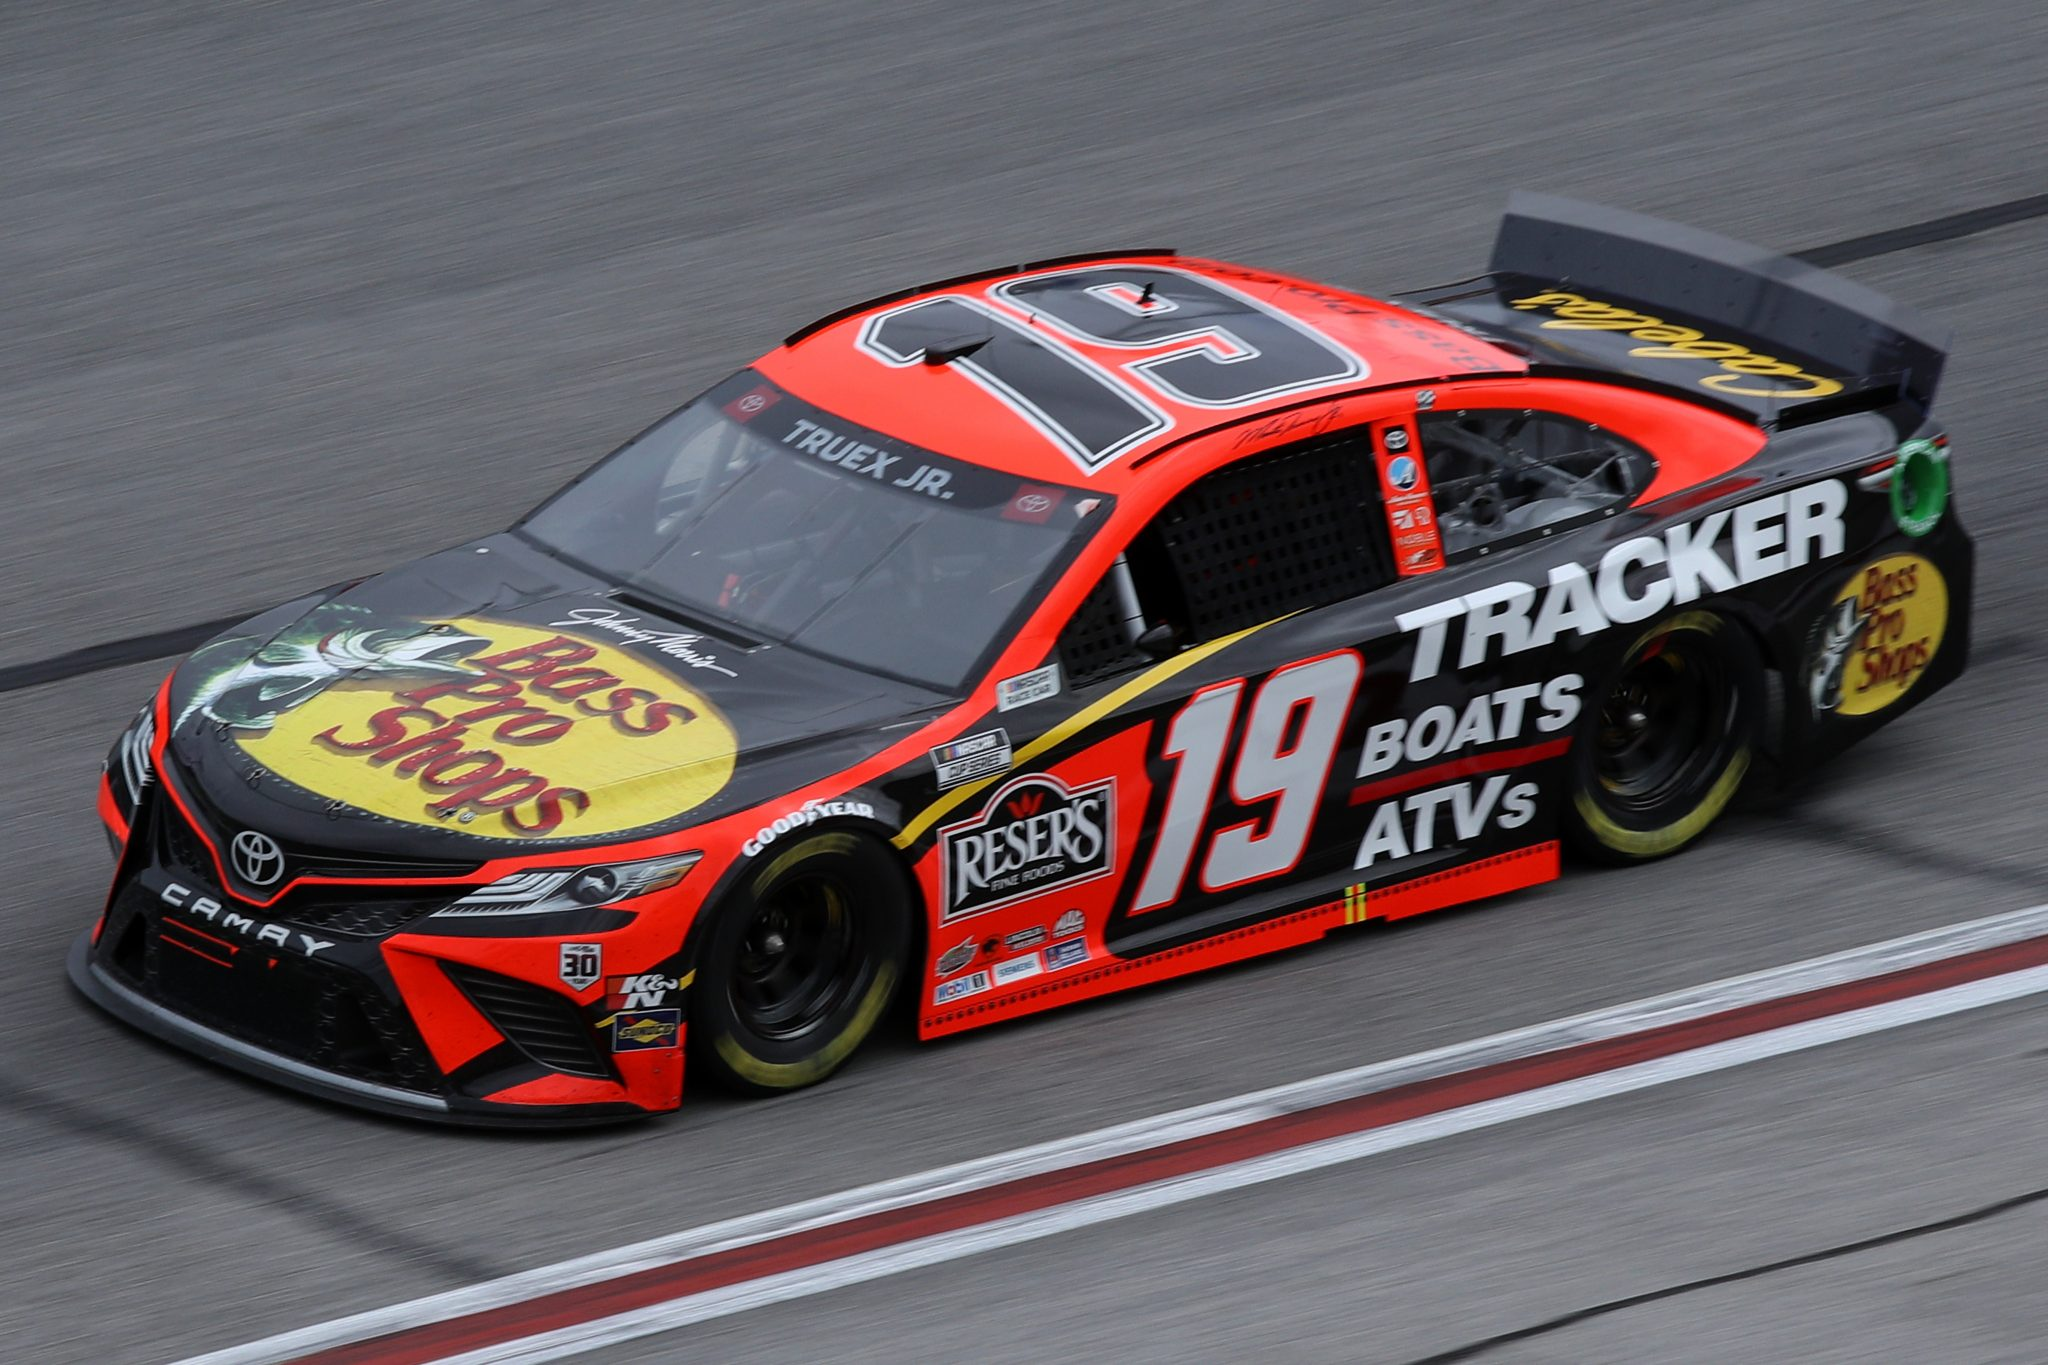 HAMPTON, GEORGIA - MARCH 21: Martin Truex Jr., driver of the #19 Bass Pro Toyota, drives during the NASCAR Cup Series Folds of Honor QuikTrip 500 at Atlanta Motor Speedway on March 21, 2021 in Hampton, Georgia. (Photo by Sean Gardner/Getty Images) | Getty Images